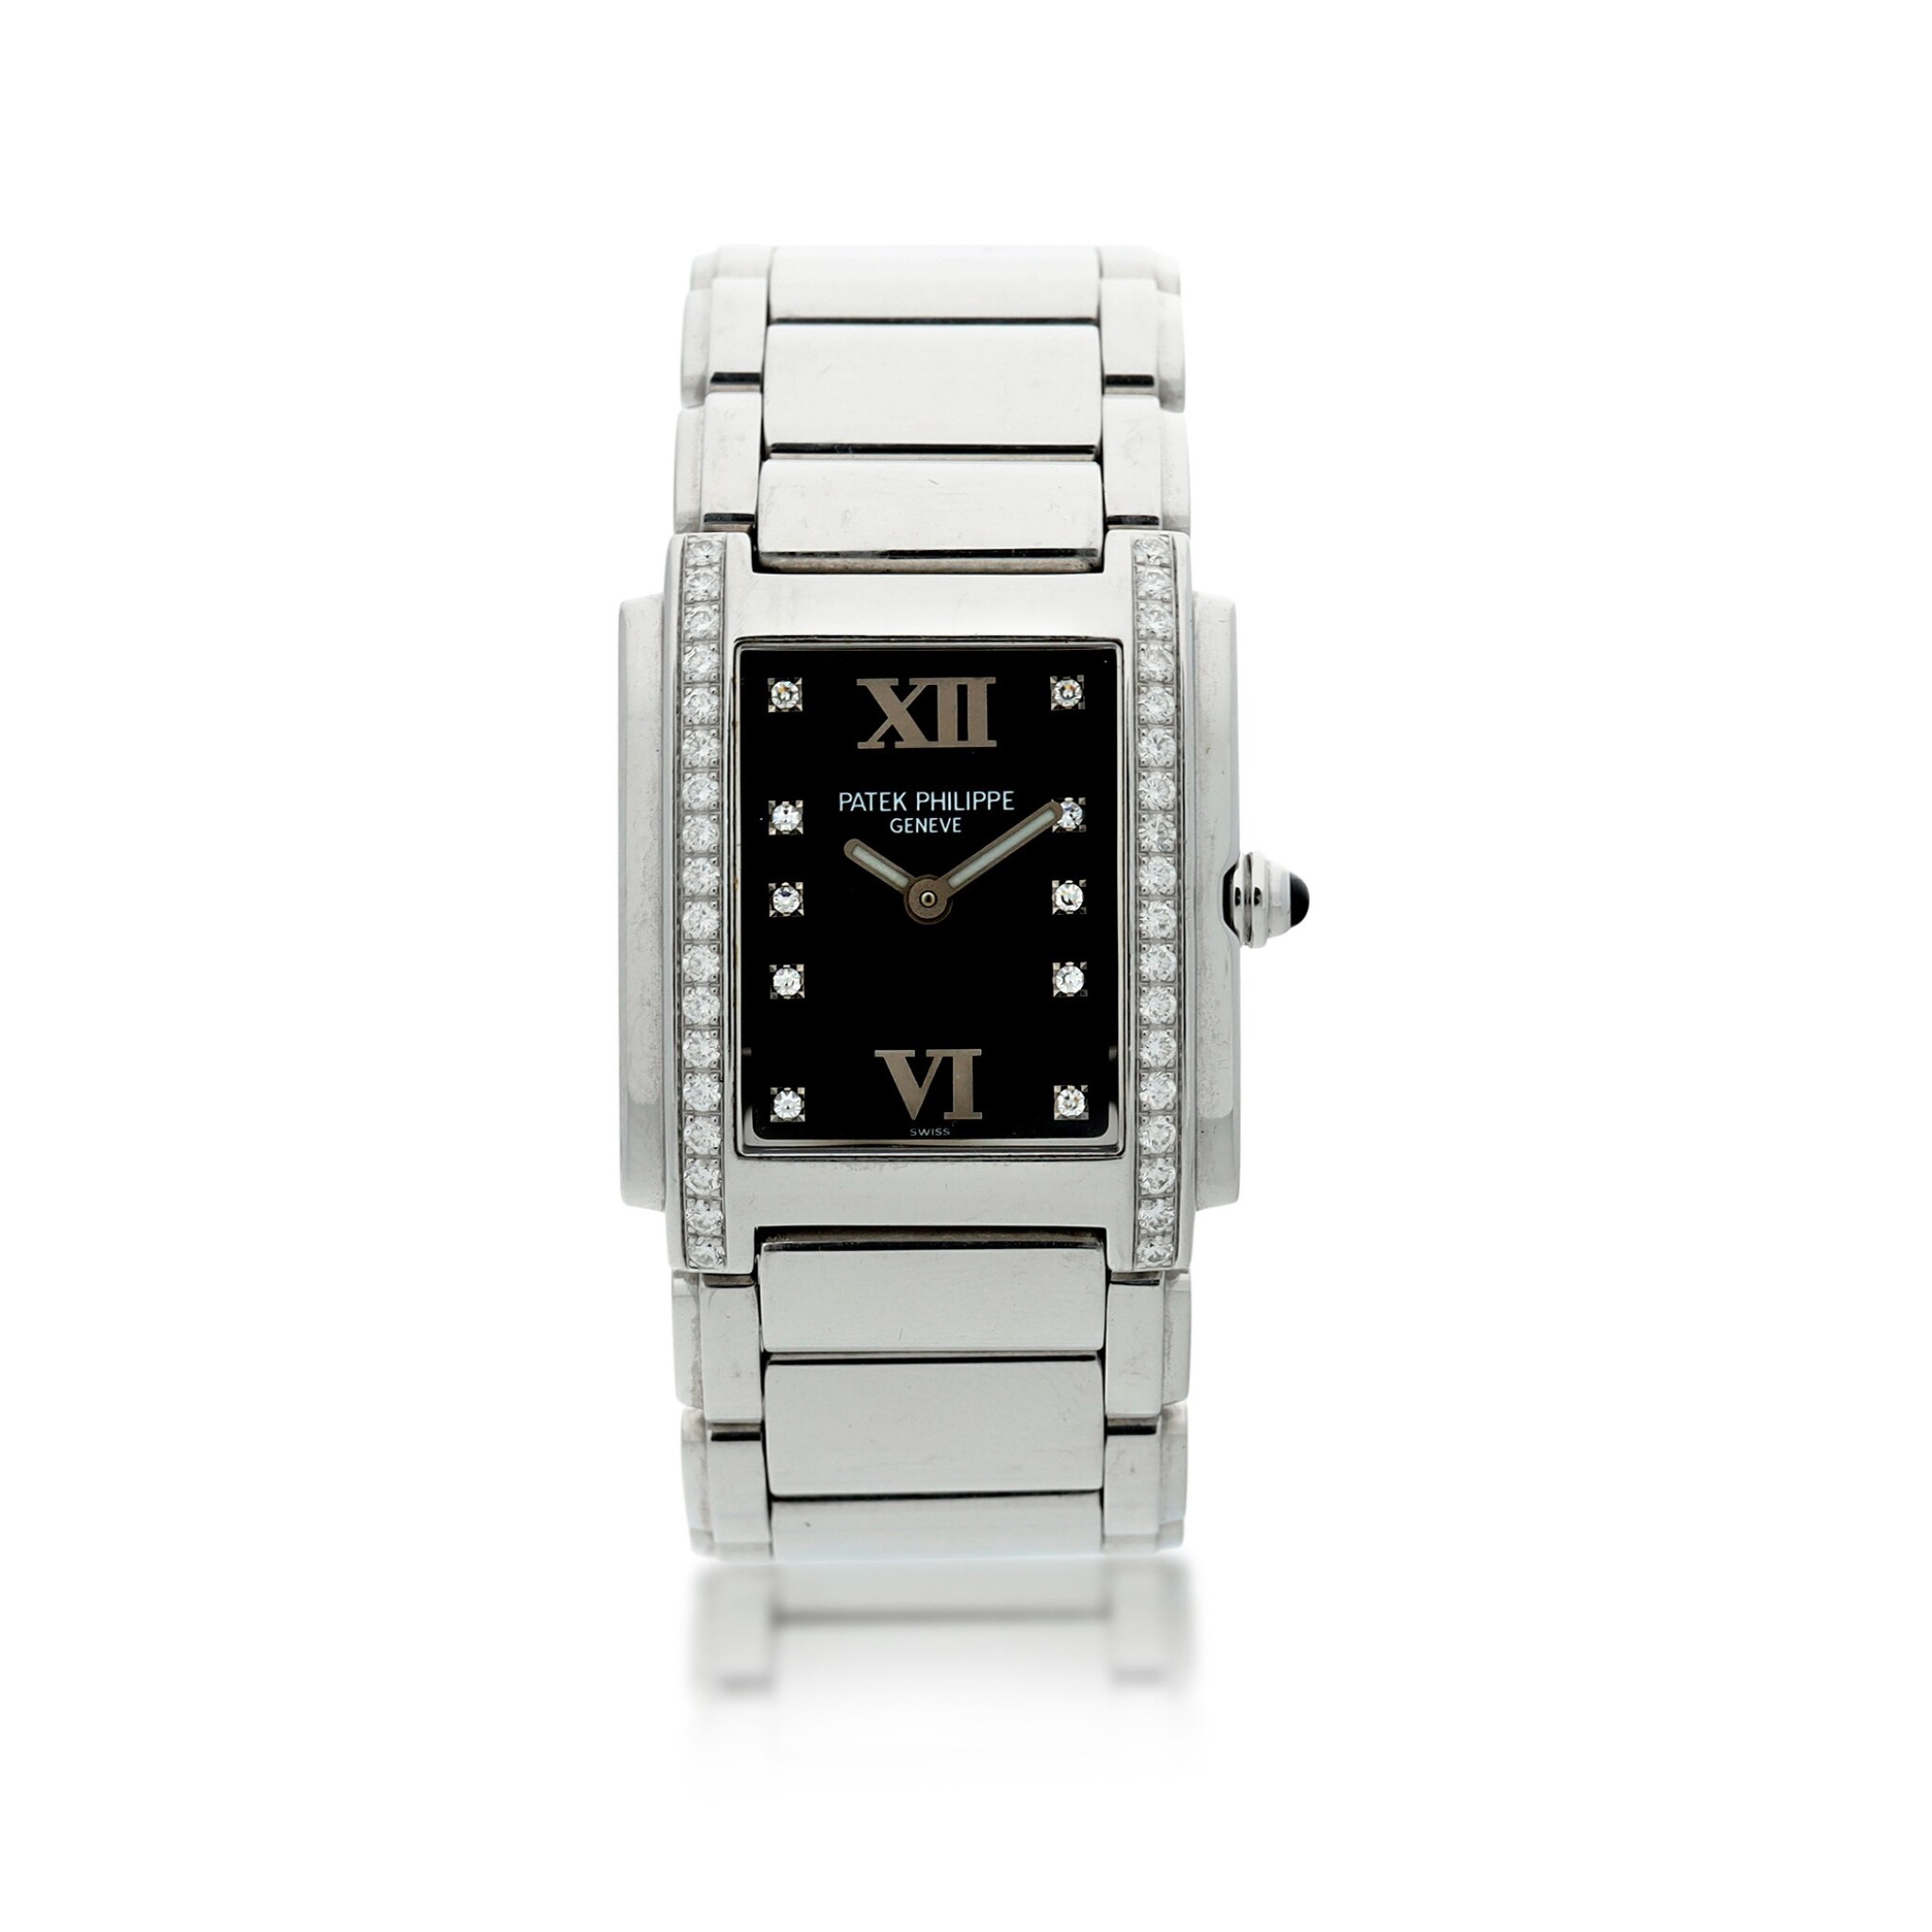 View full screen - View 1 of Lot 75. REFERENCE 4910/010 TWENTY-4 A STAINLESS STEEL AND DIAMOND-SET BRACELET WATCH, MADE IN 2001.